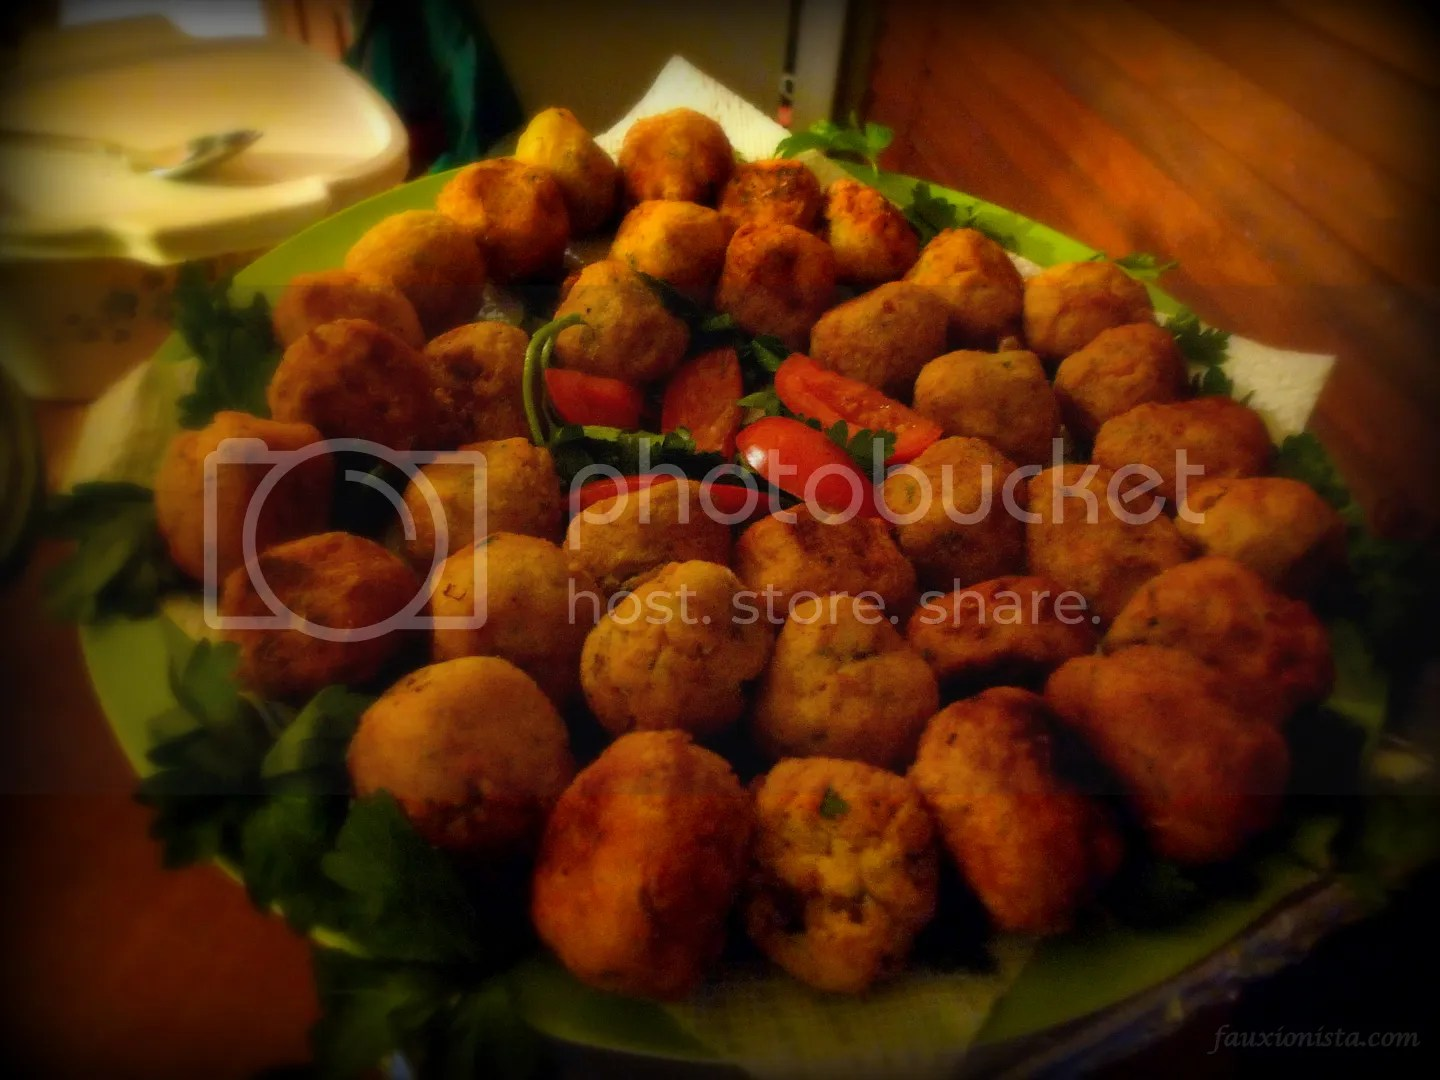 Thanksgiving Ghanaian Style - Yam Balls